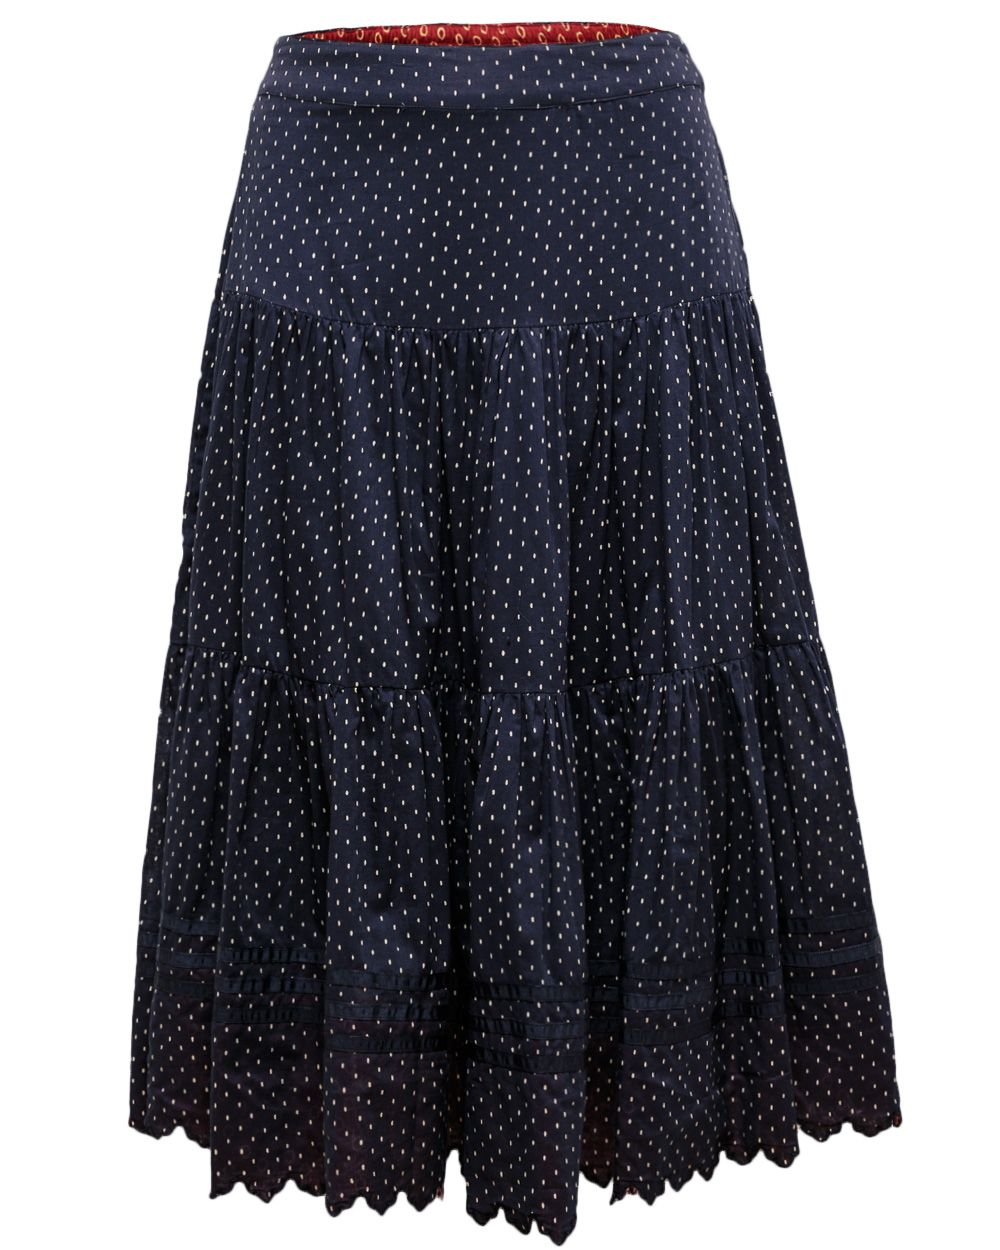 Emi print tiered skirt